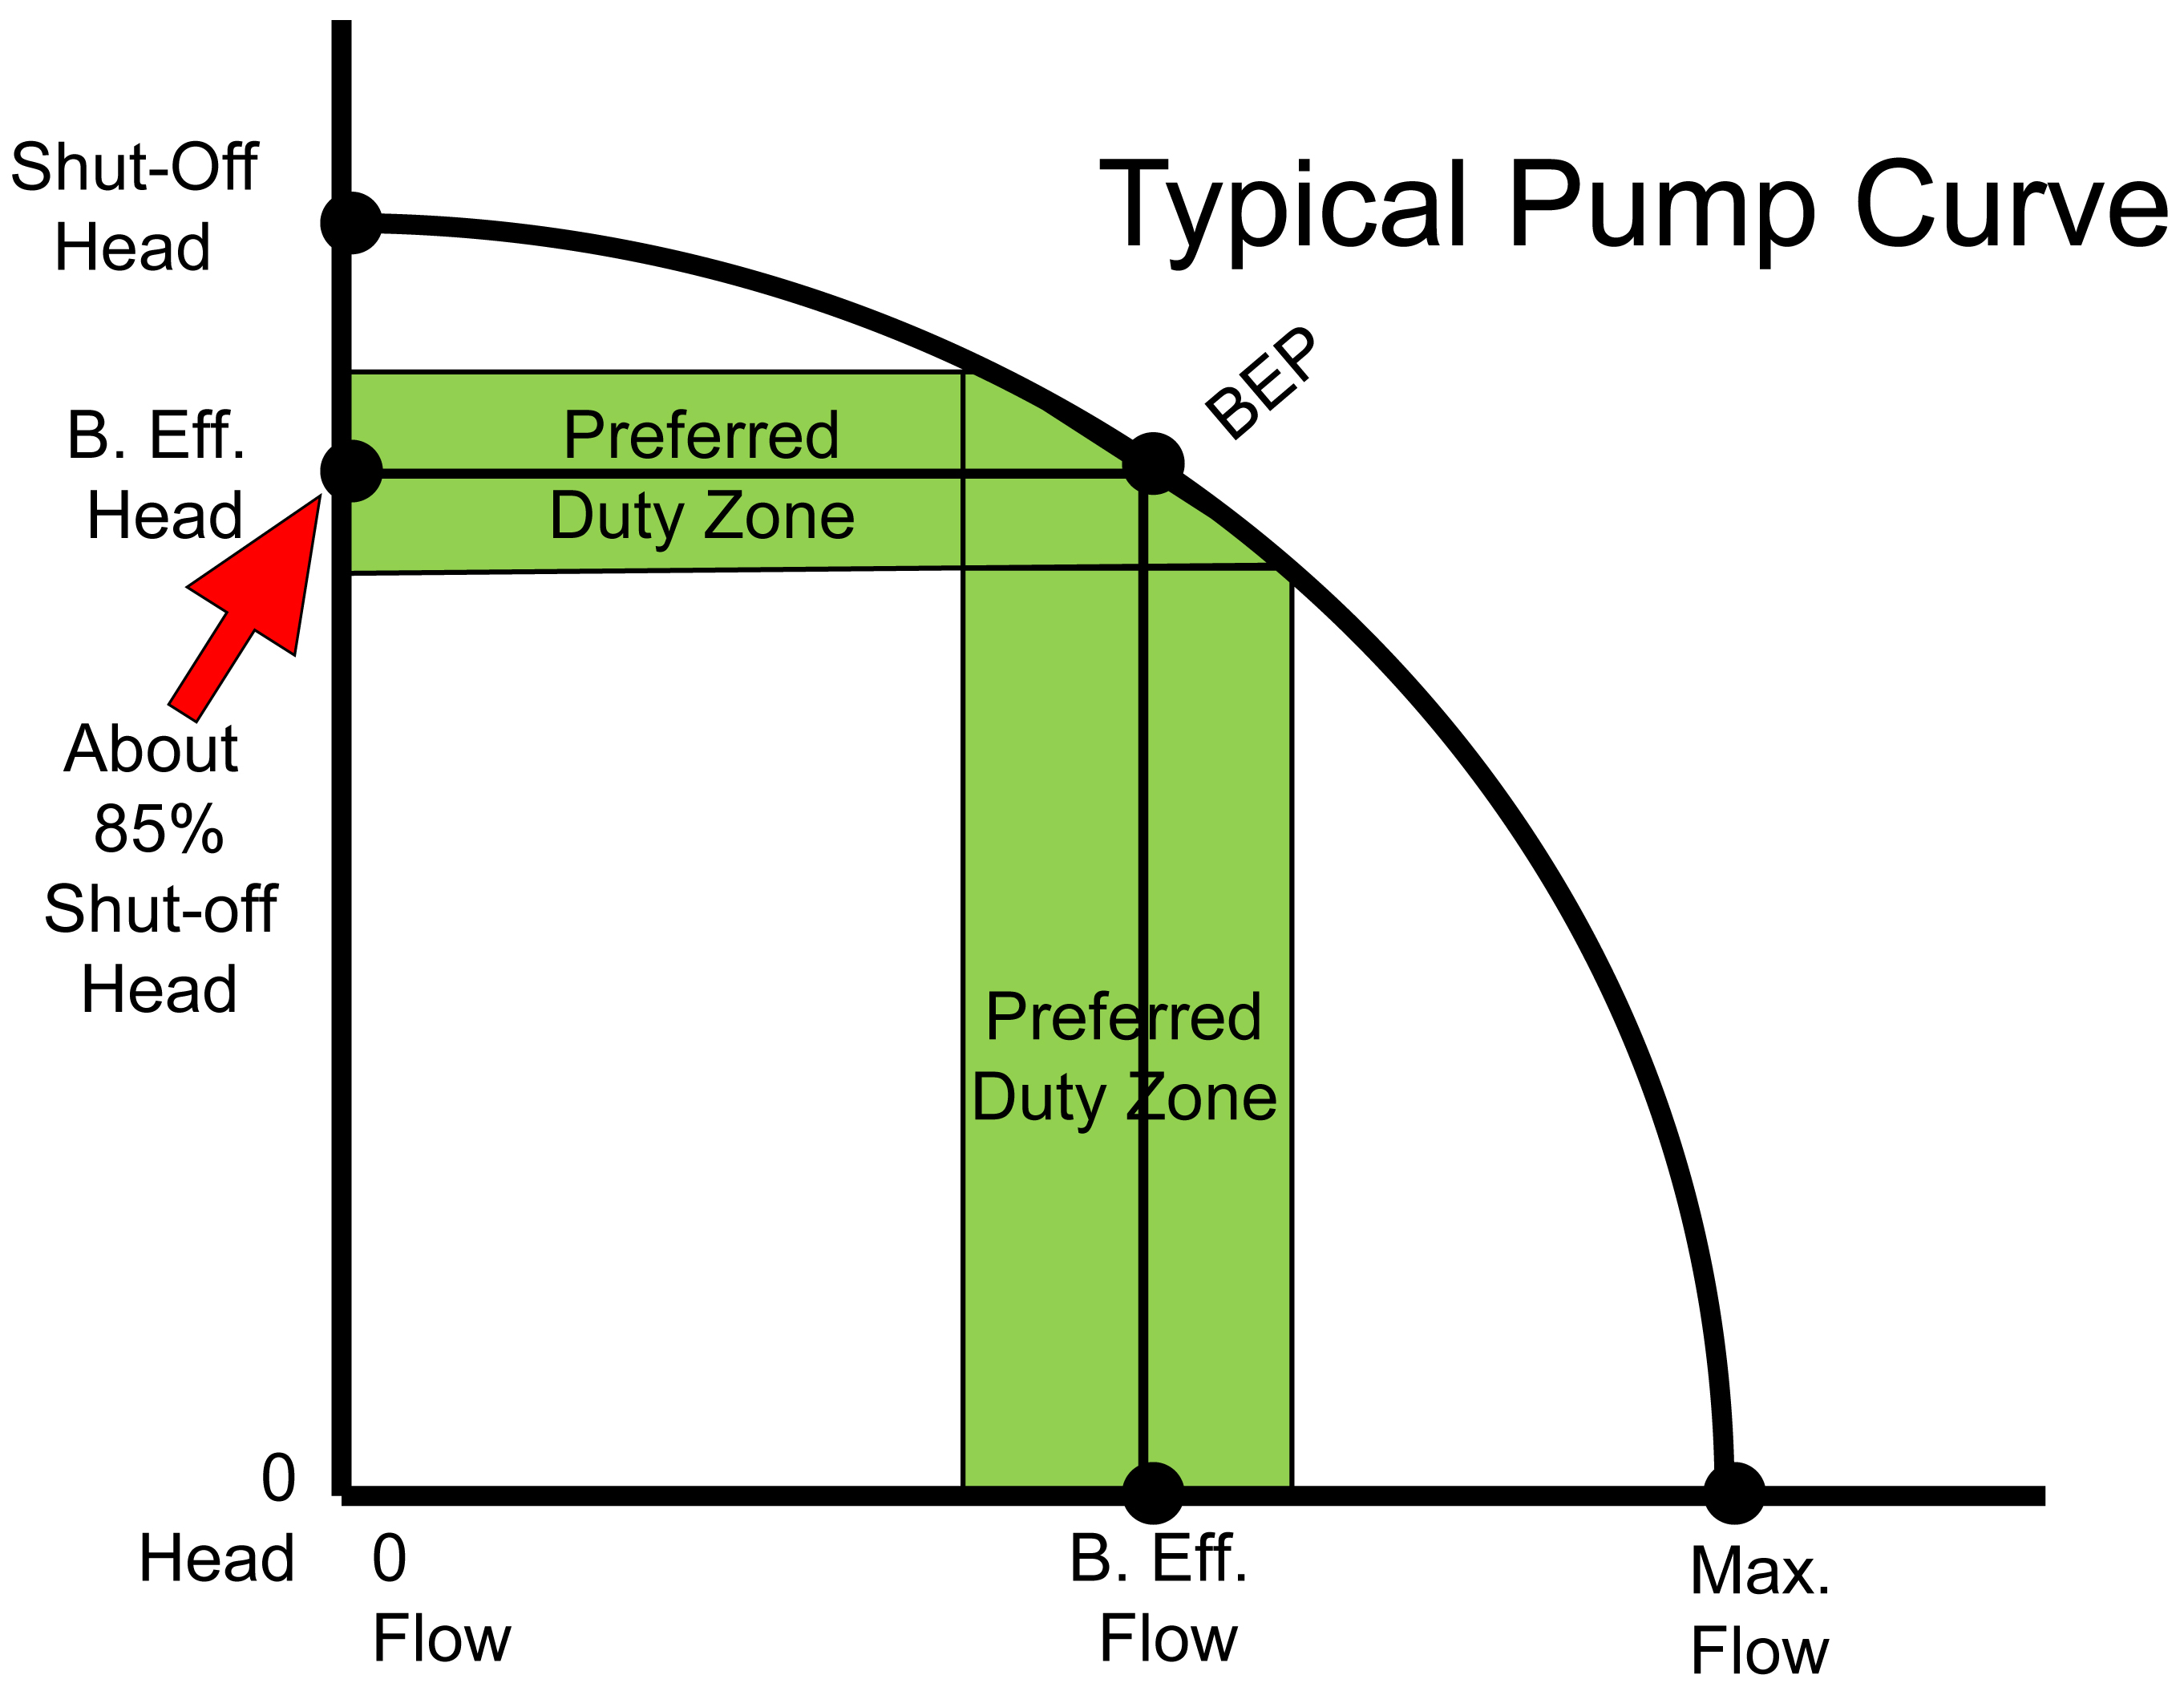 Typical Pump Curve